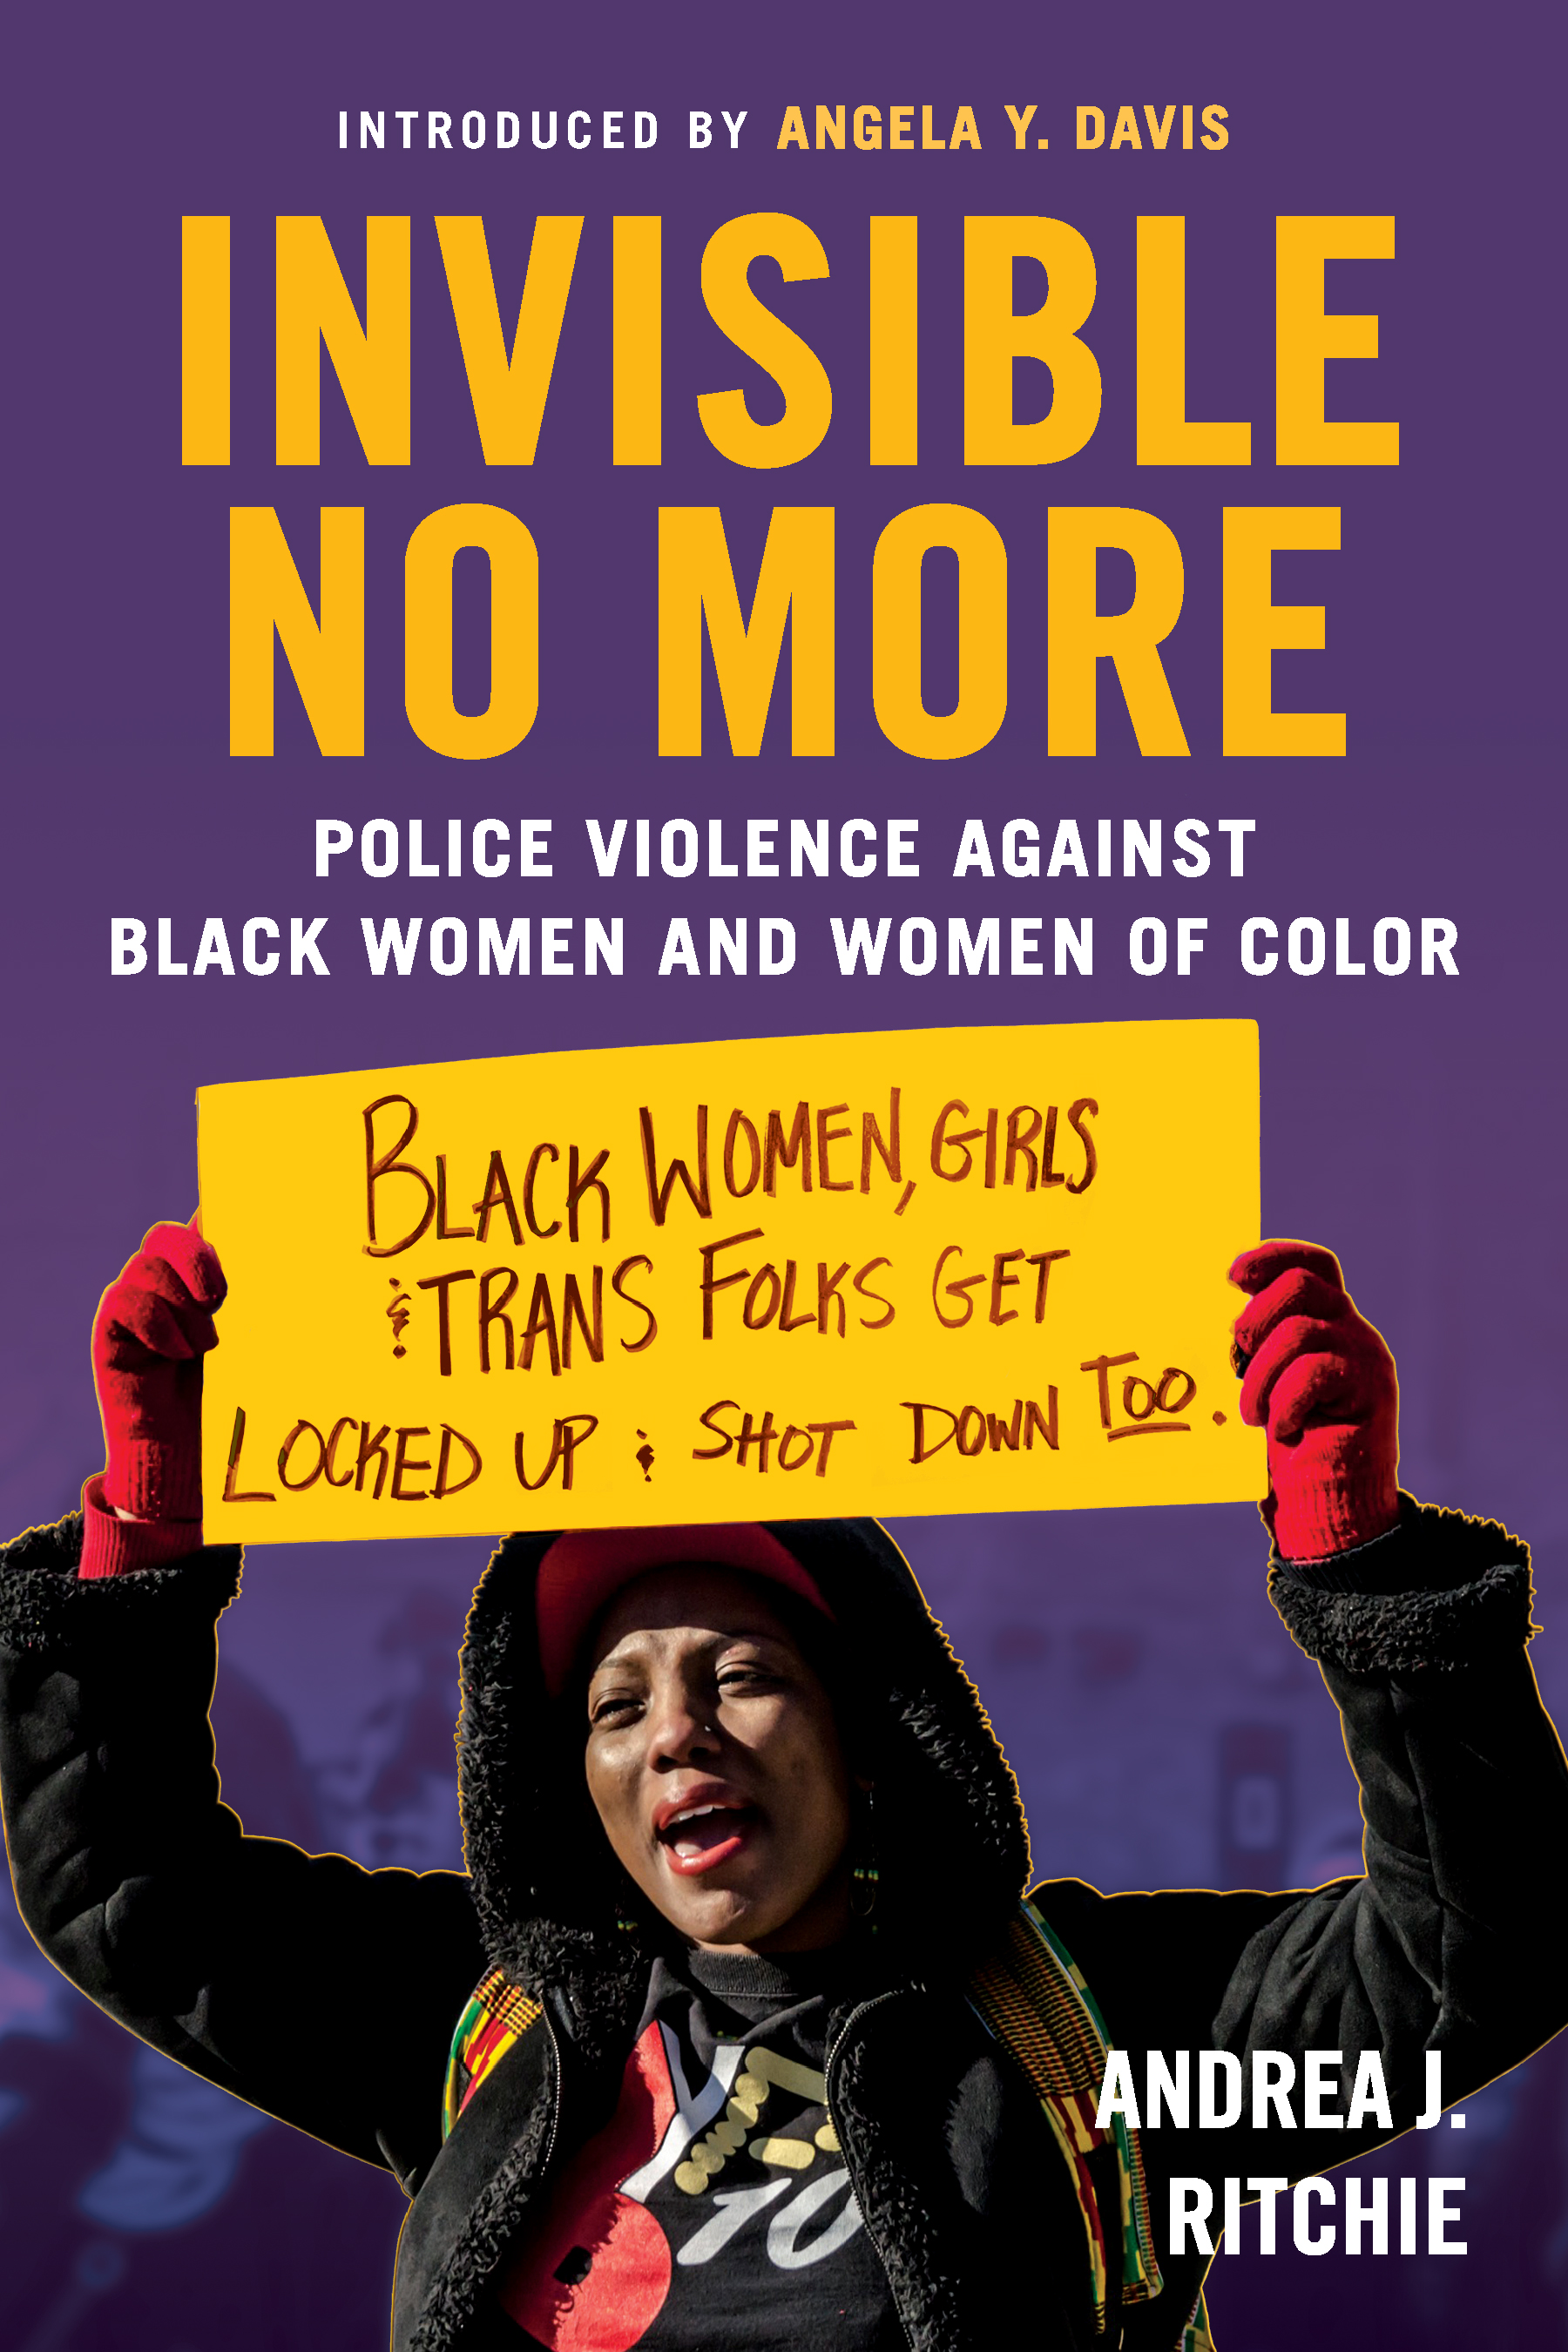 Police Violence Against Black Women and Women of Color